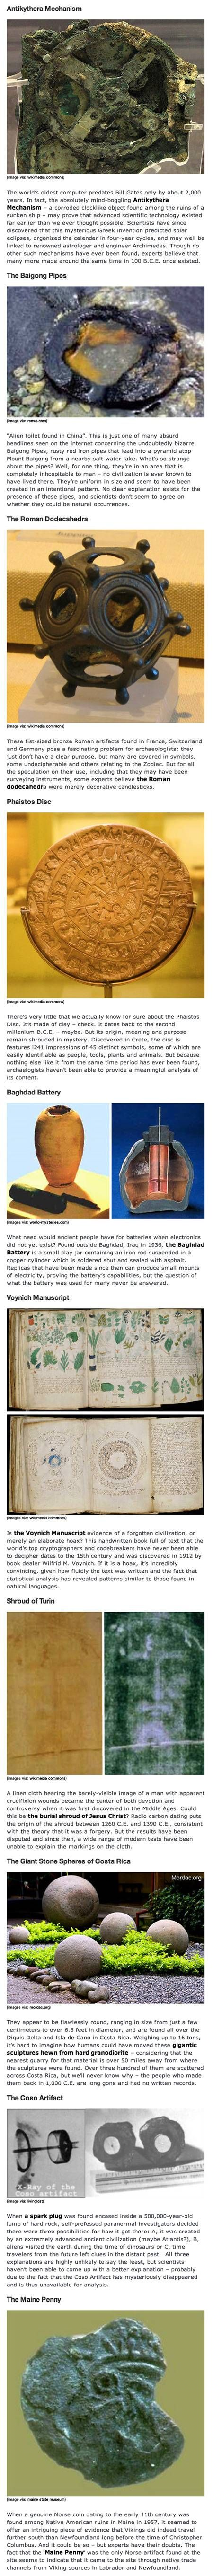 Here are some interesting technology artifacts from ancient times.